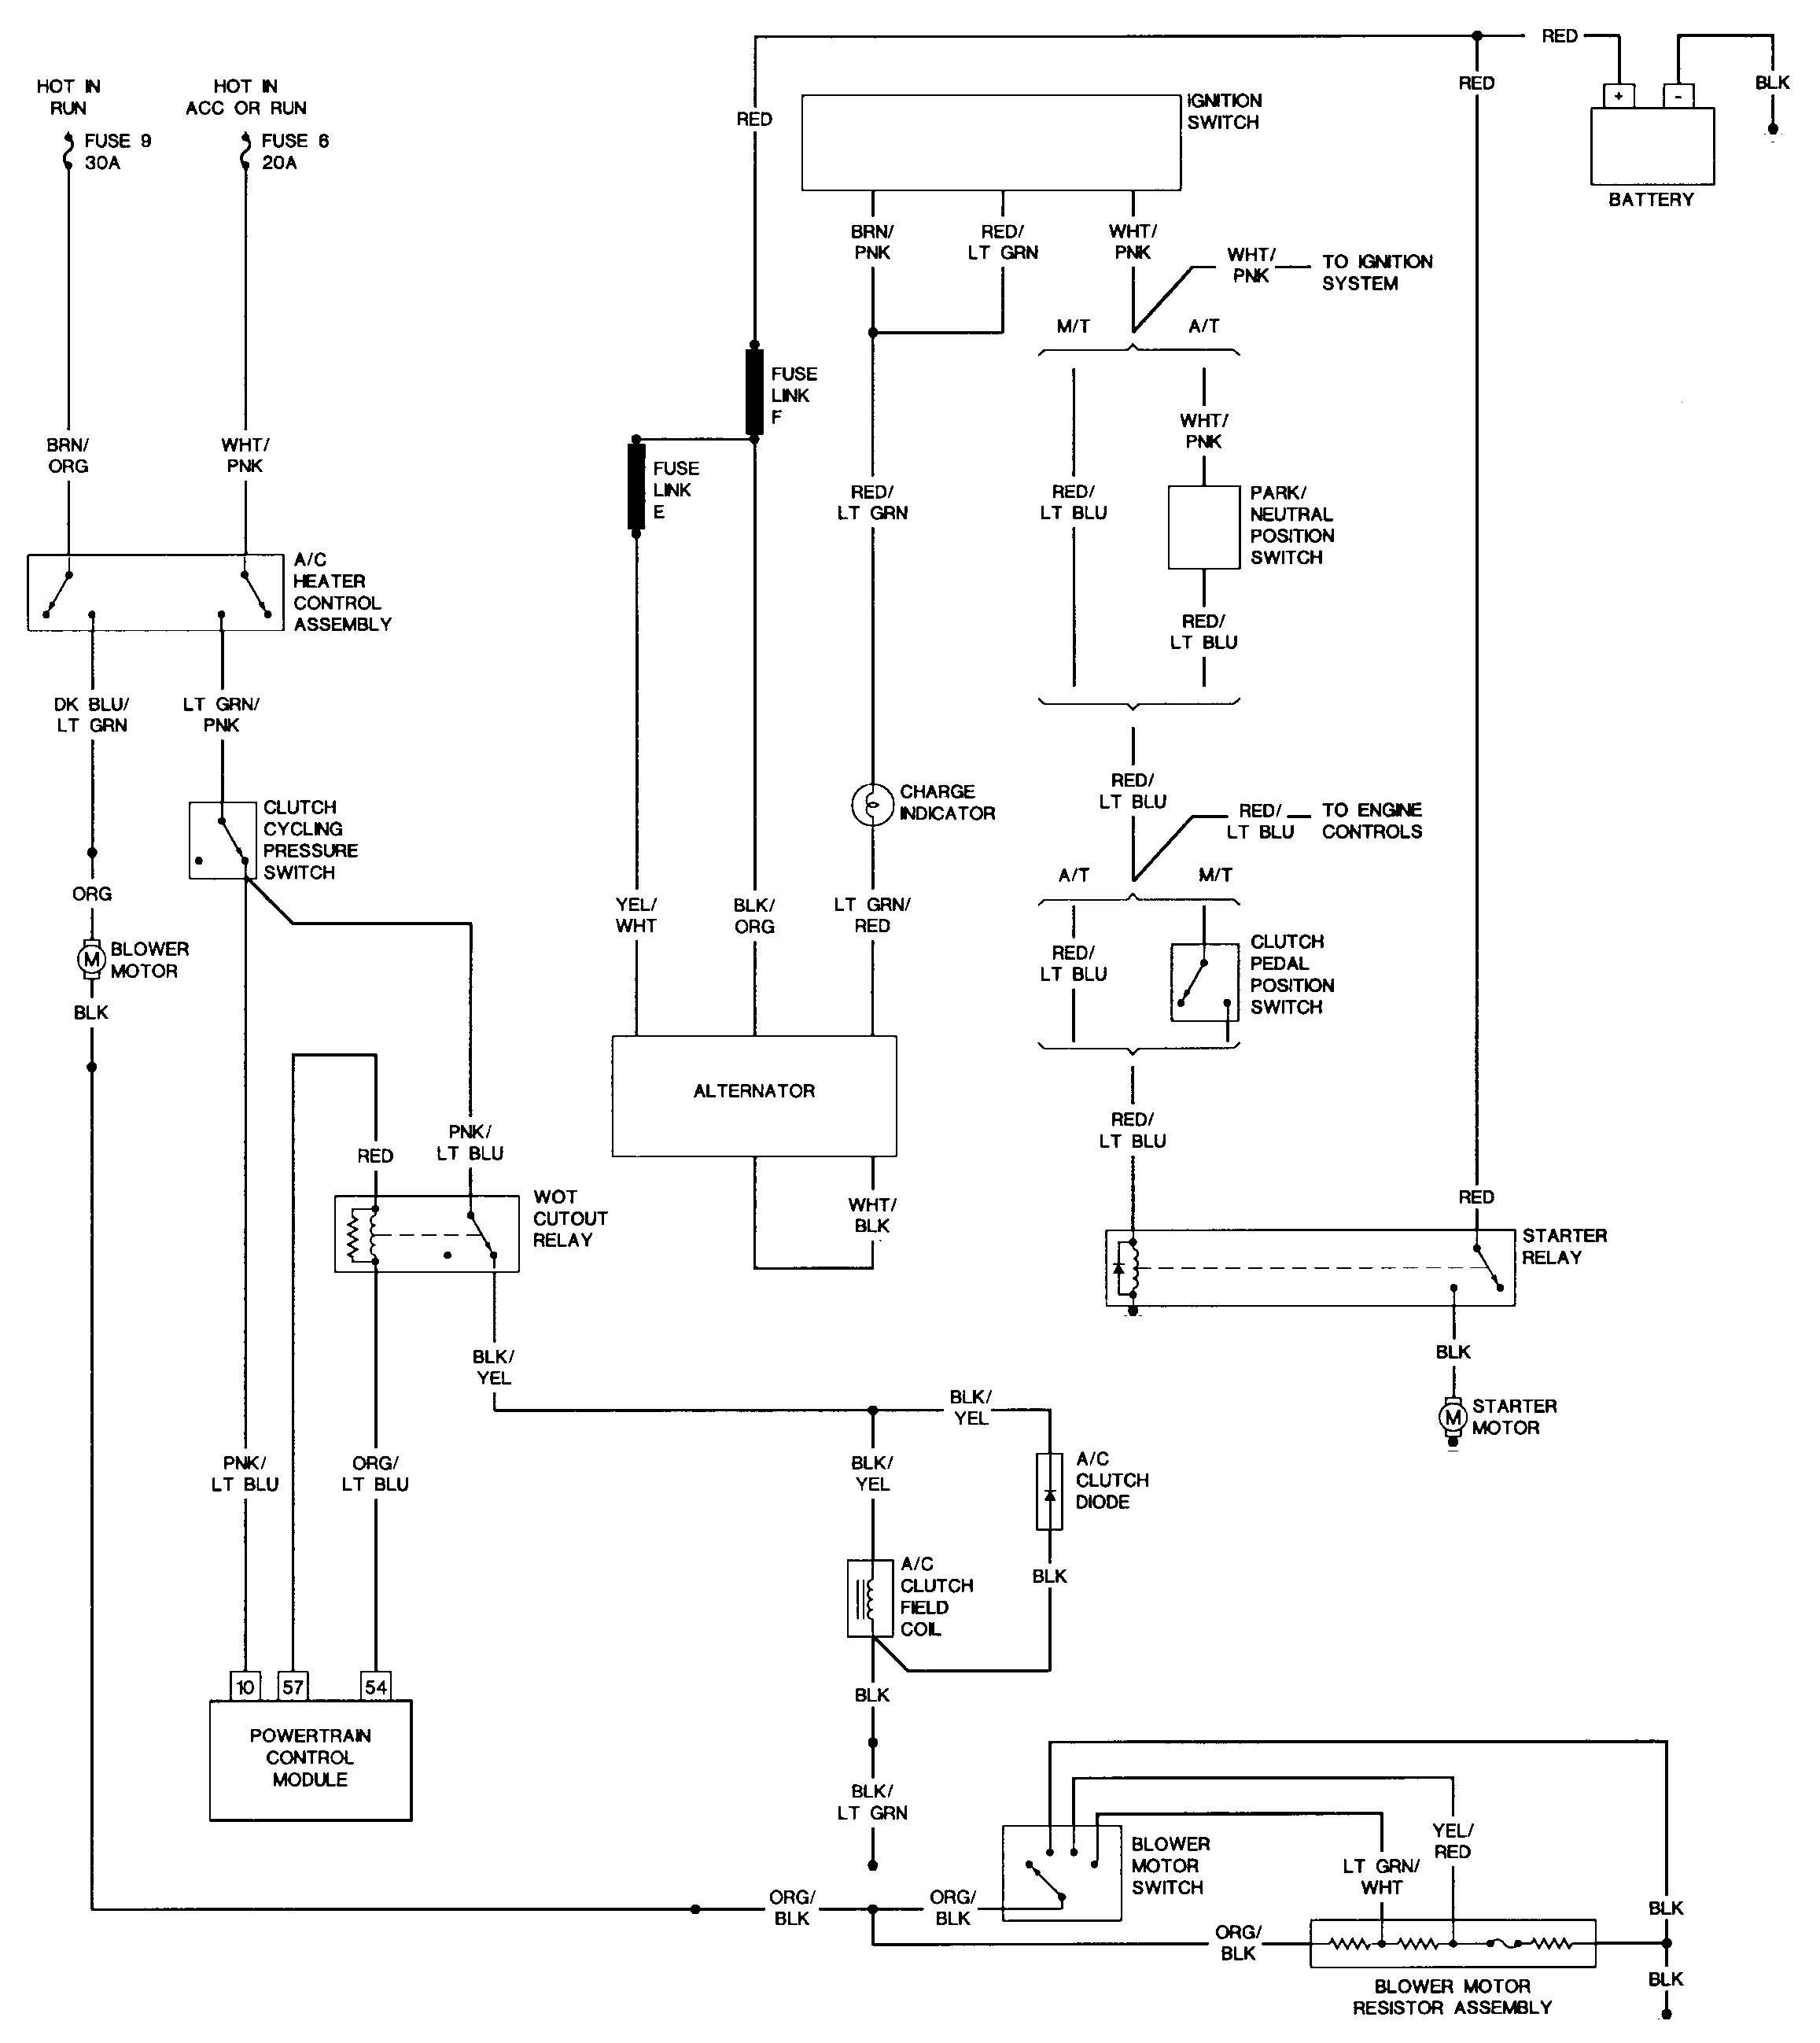 1990 mustang wiring diagram: refer 1990 mustang gt convertible 5 o  engine